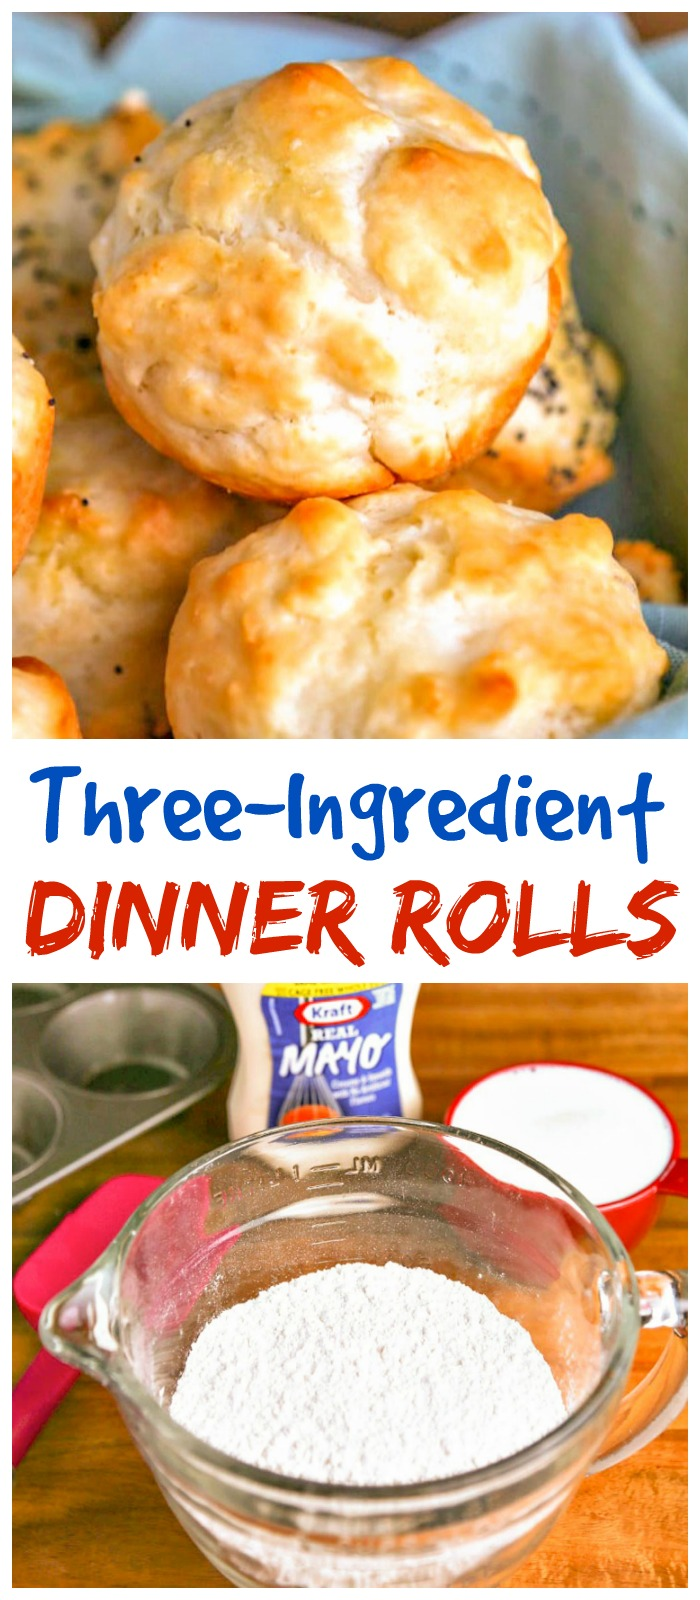 No Yeast Dinner Rolls - The Weary Chef